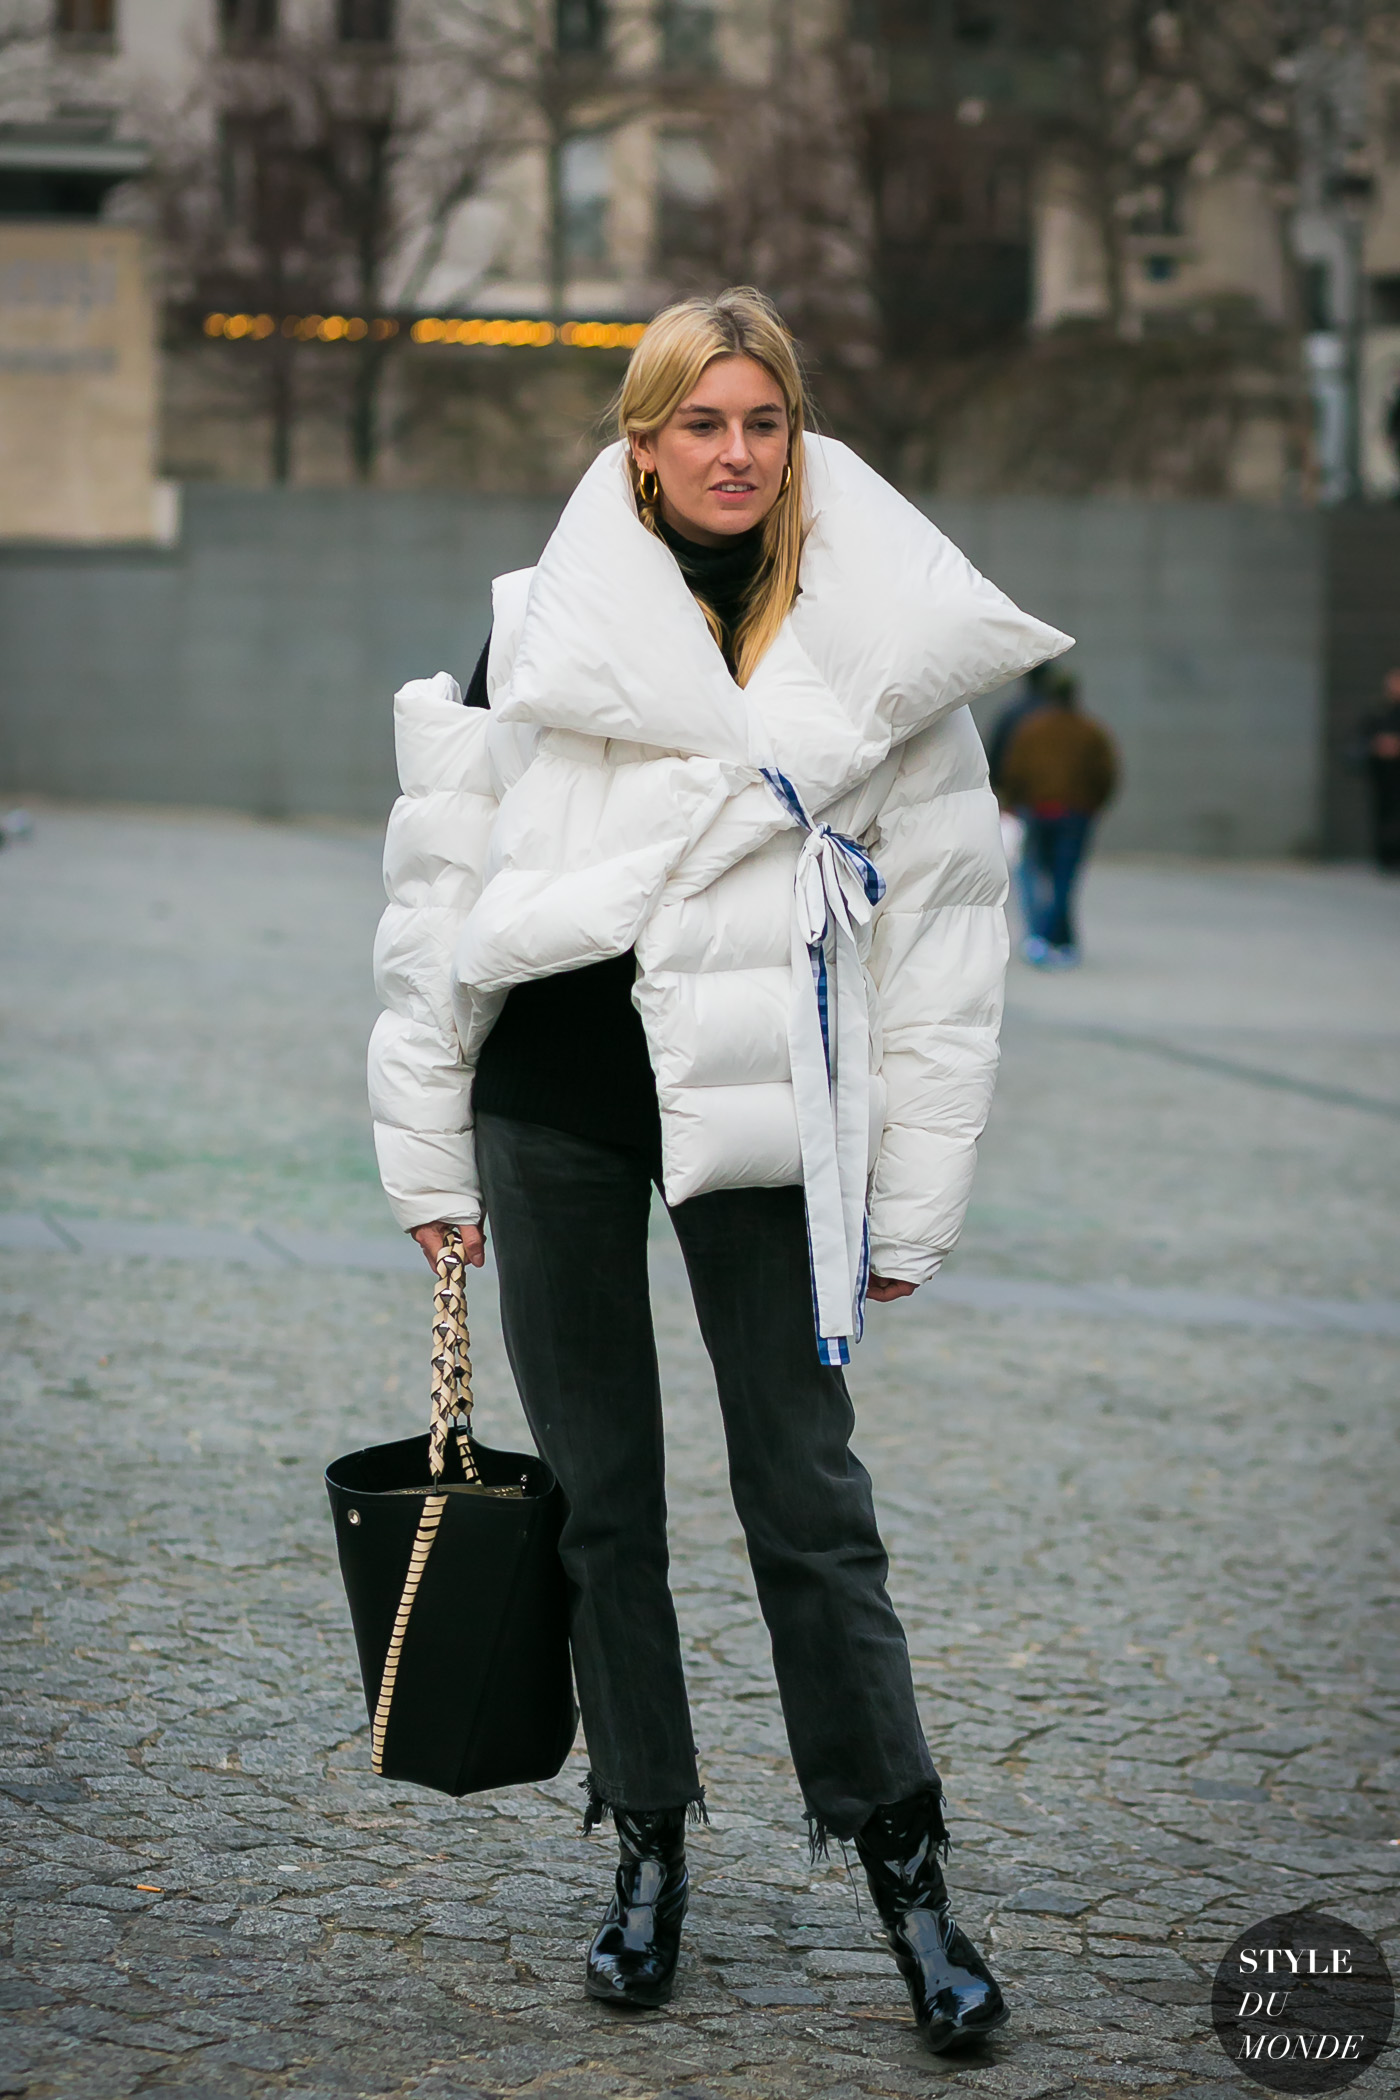 Camille Charriere by STYLEDUMONDE Street Style Fashion Photography0E2A7860